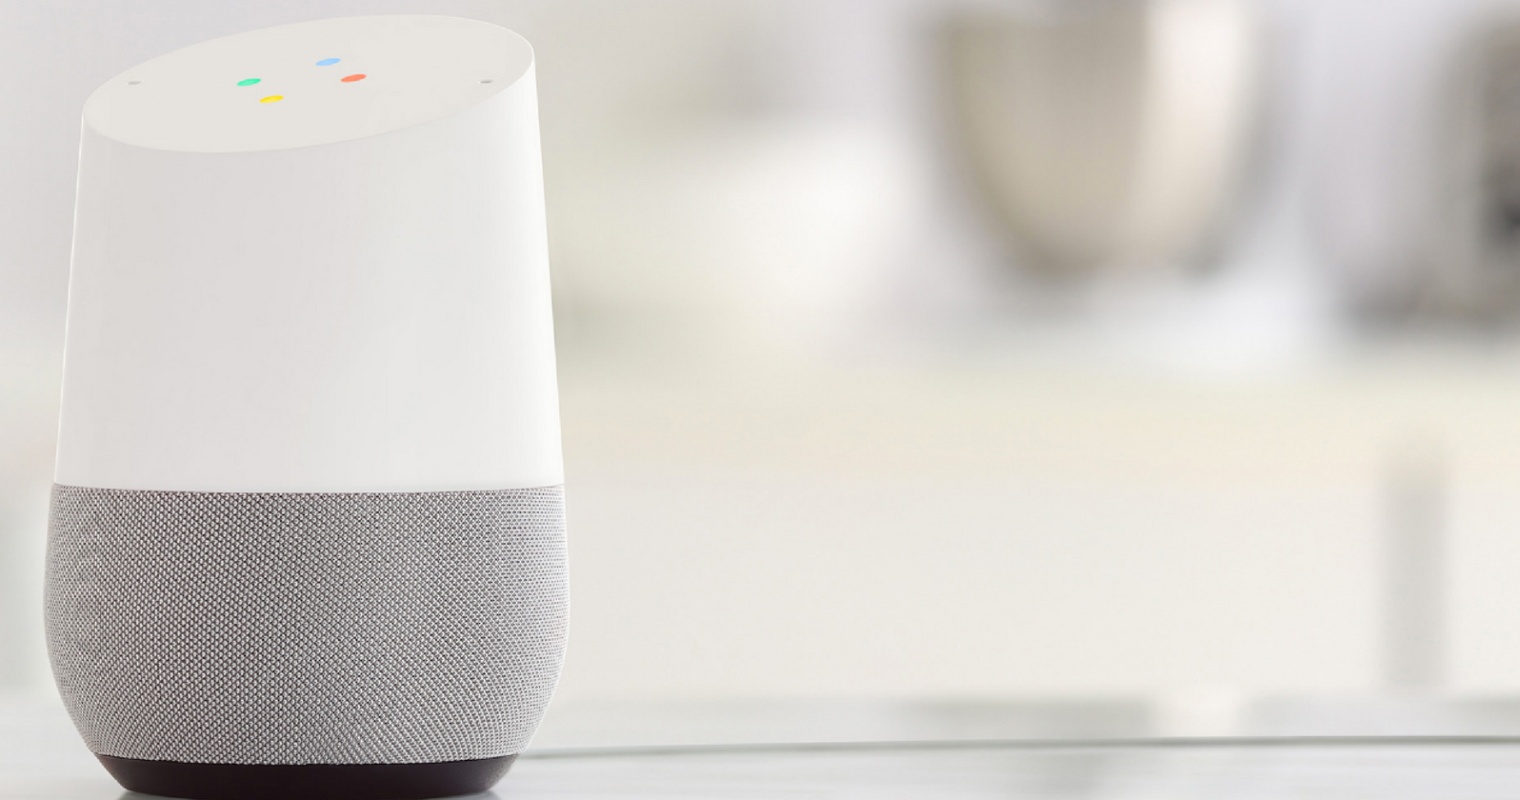 Google Rolls Out Ads to Google Home, Then Promptly Removes Them